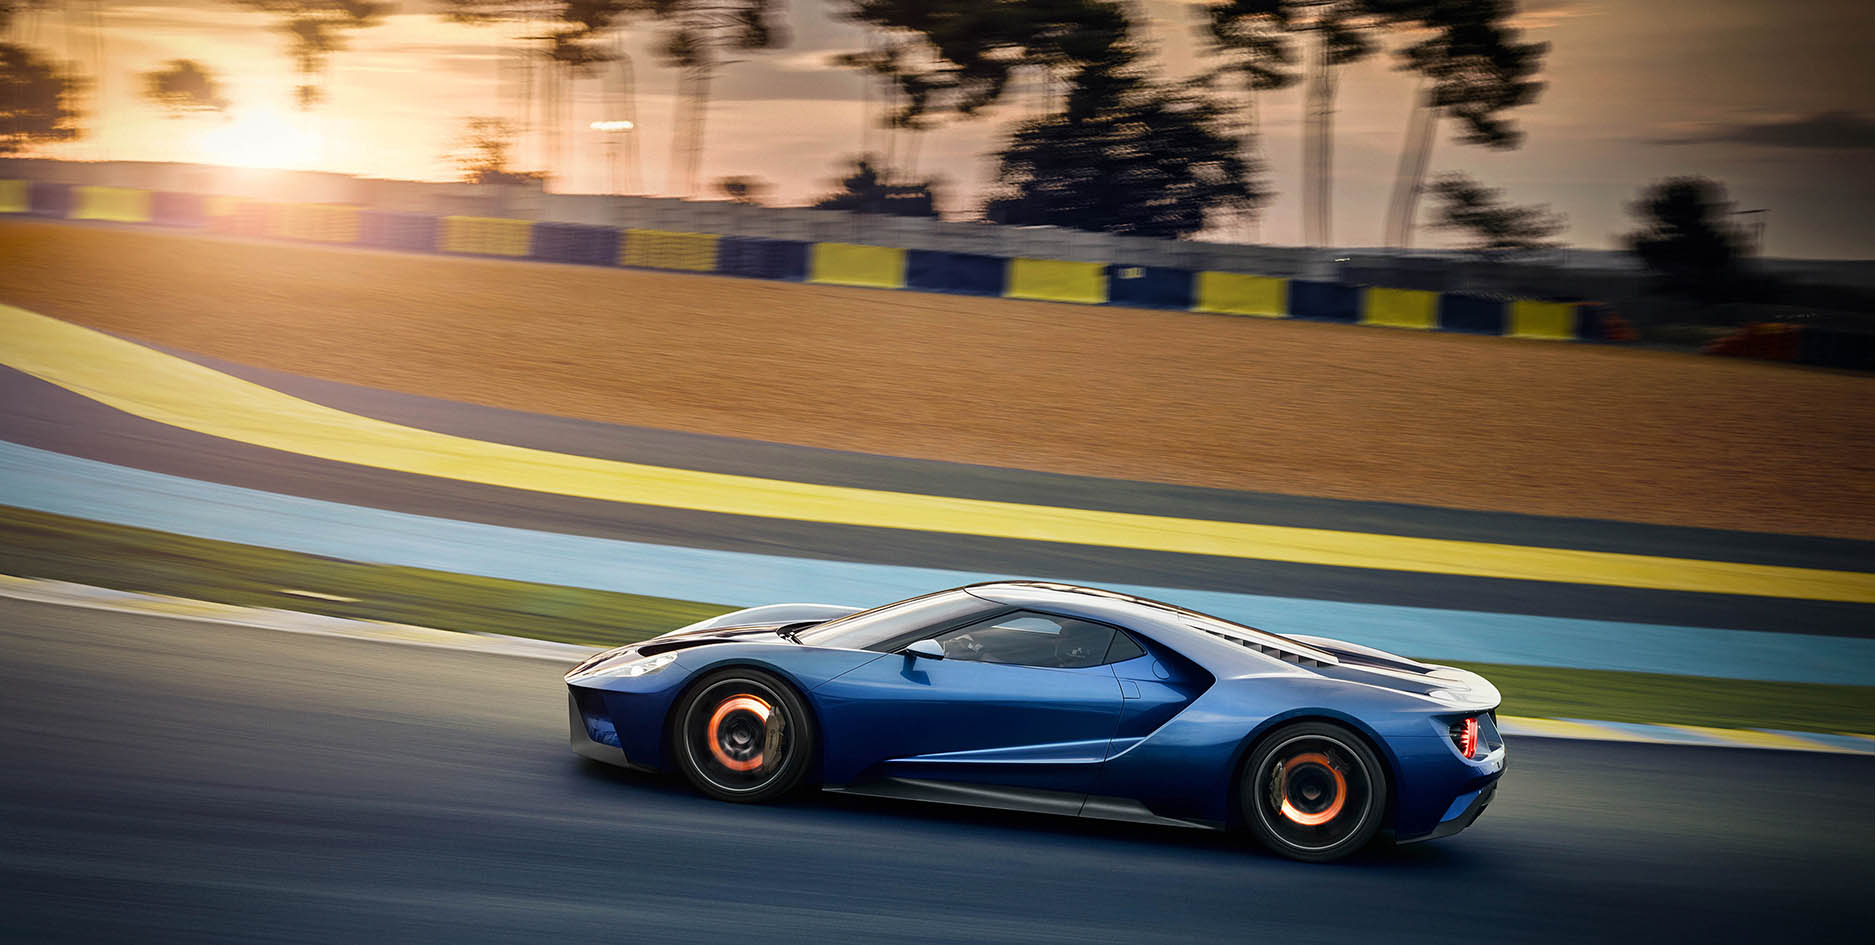 Performance Ford Is Also Yet To Reveal Any Specifics On Performance For The Gt But Has Promised One Of The Best Power To Weight Ratios Of Any Car